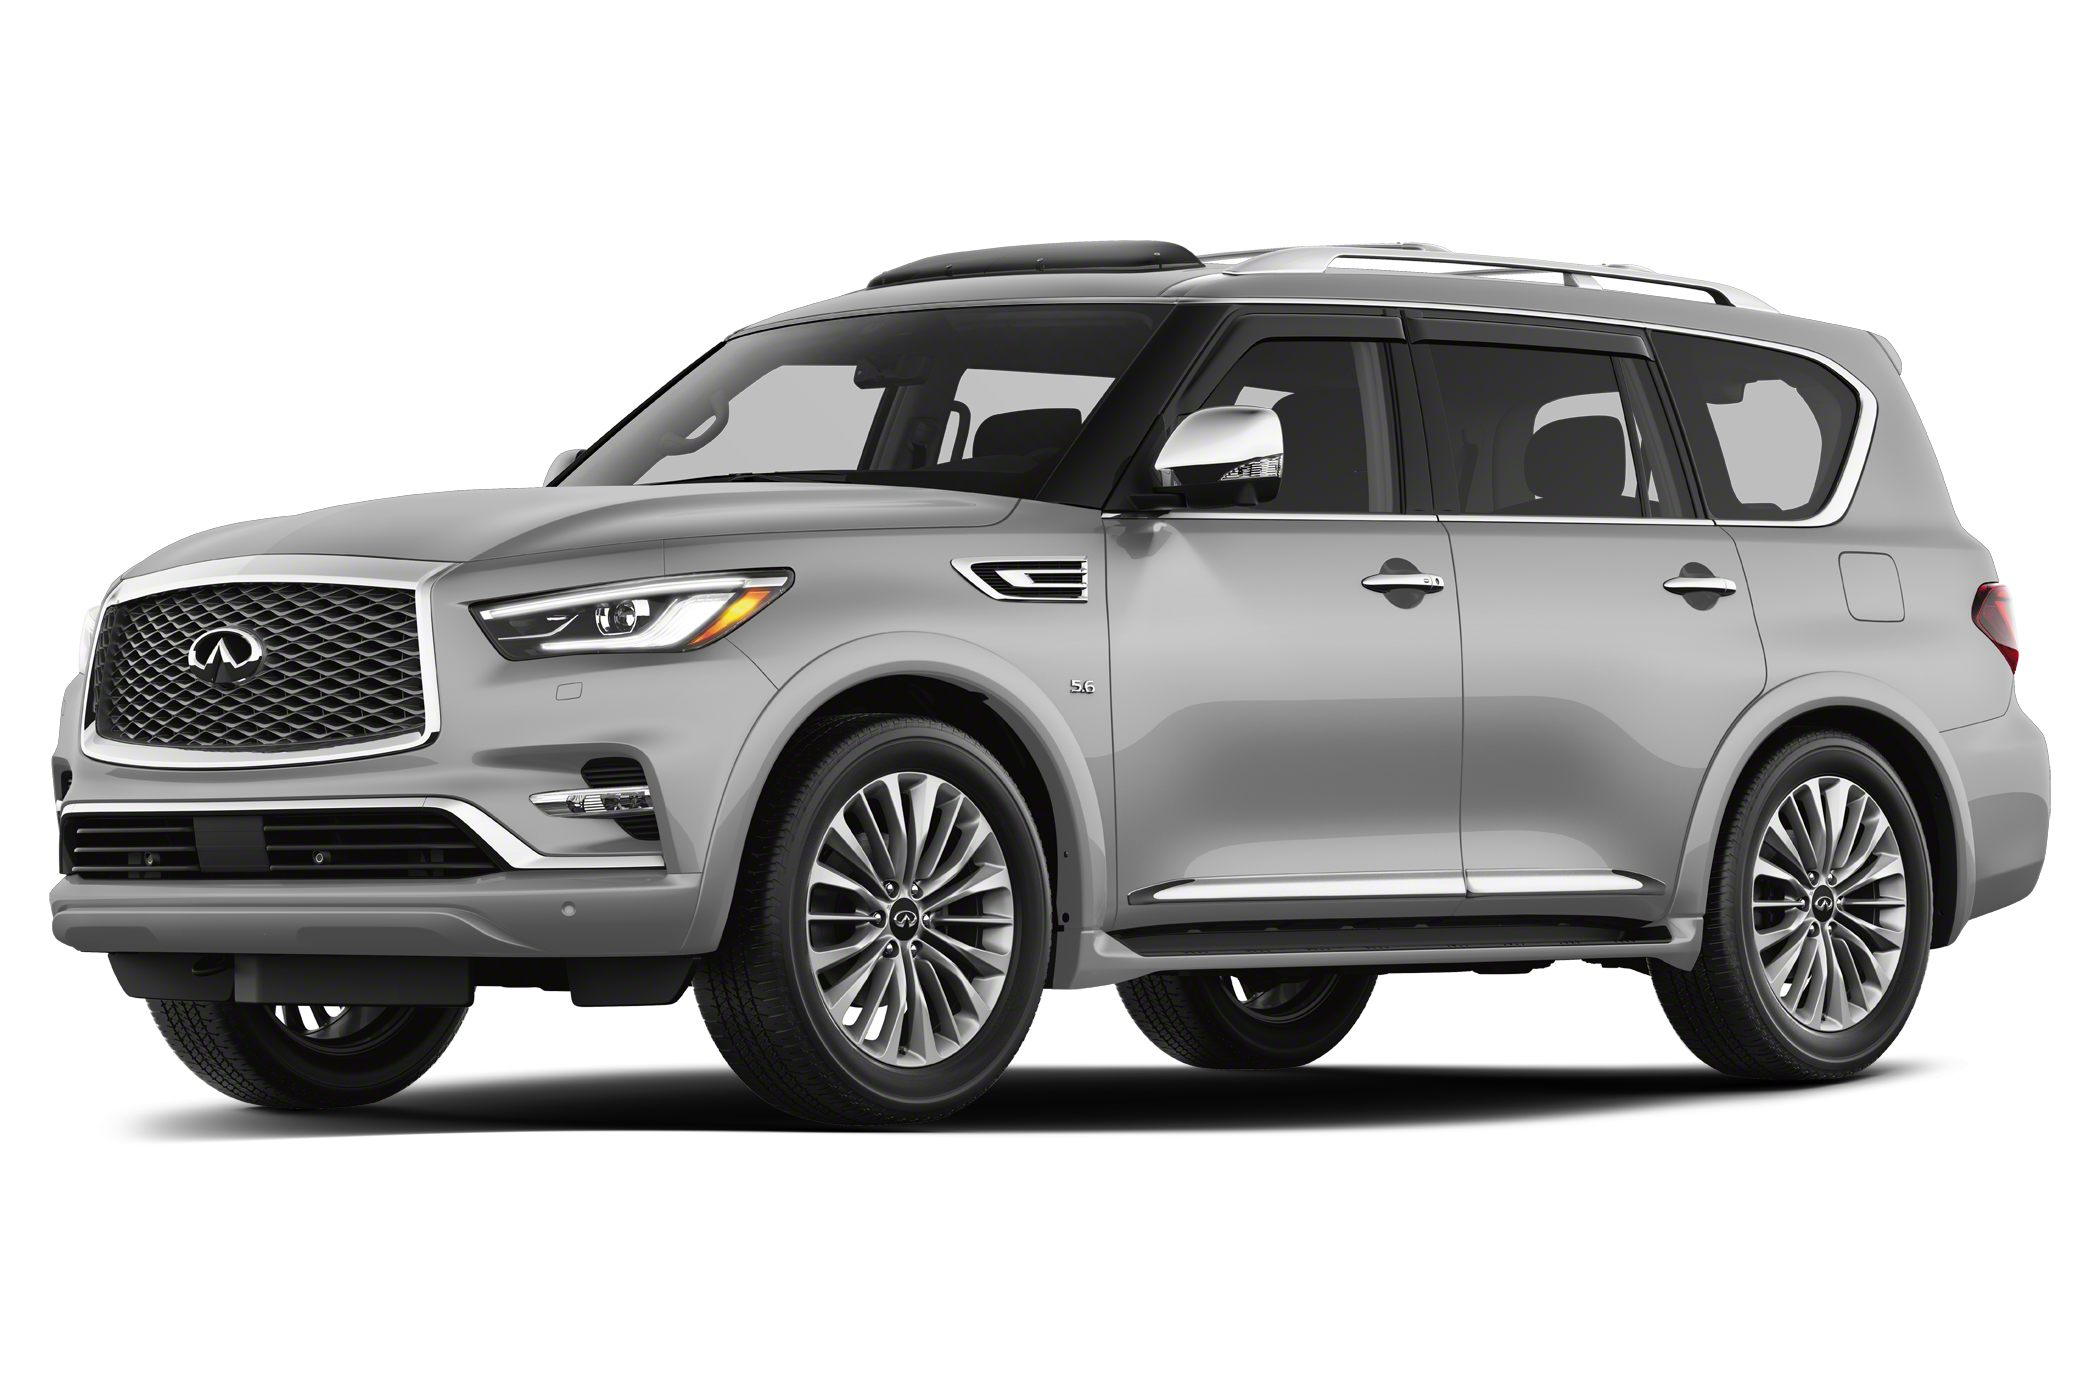 2018 INFINITI QX80 for Sale